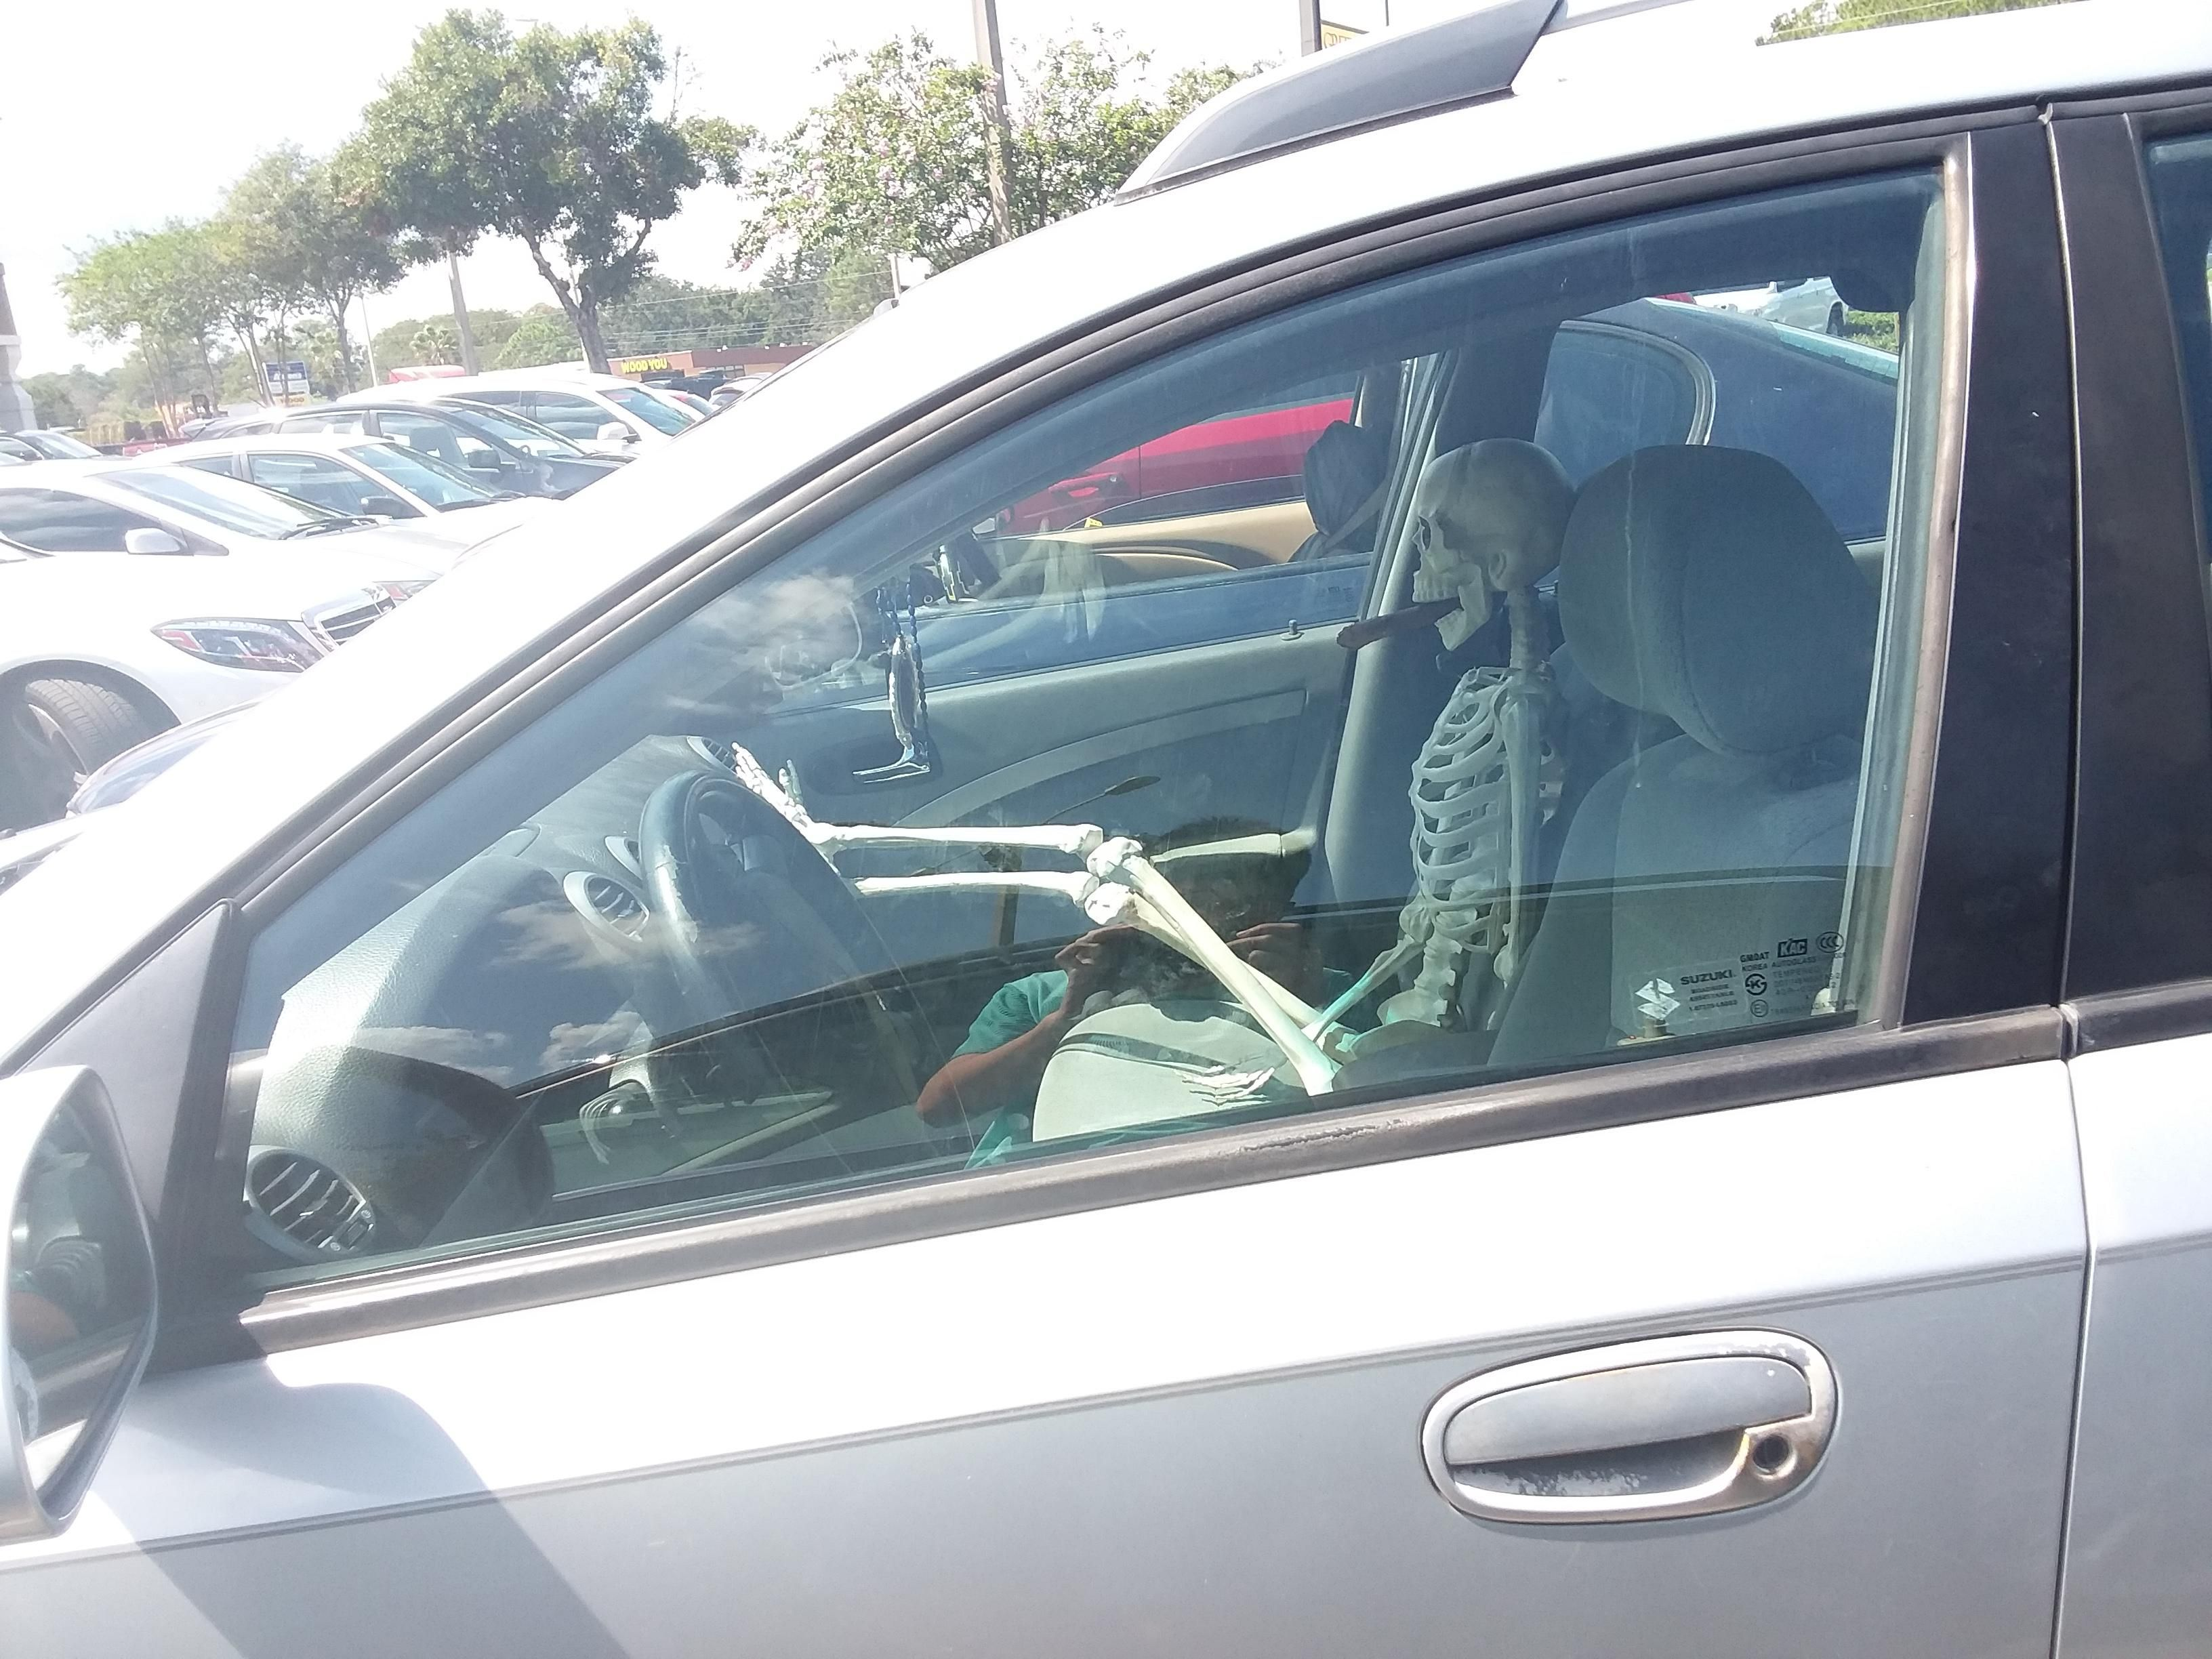 I stayed in the car while the adults went in the DMV, took a nap for a bit. After waking up in the front seat, I saw this fella in the car next to me...